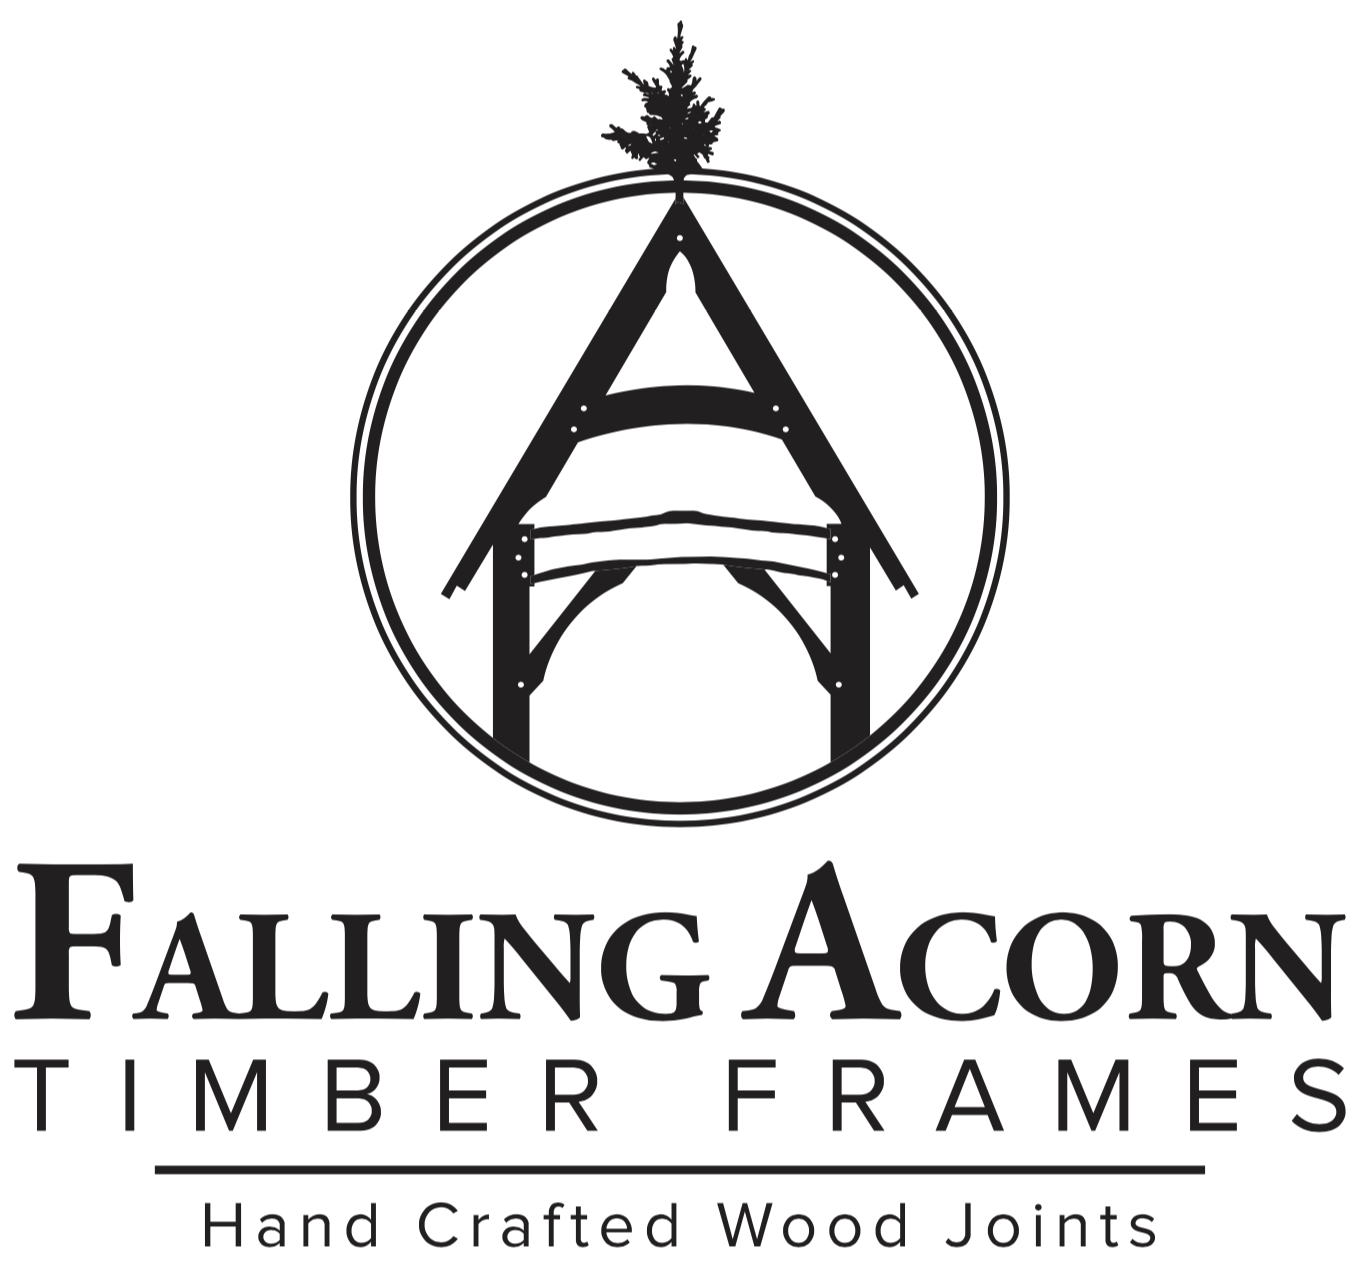 Falling Acorn Timber Framing